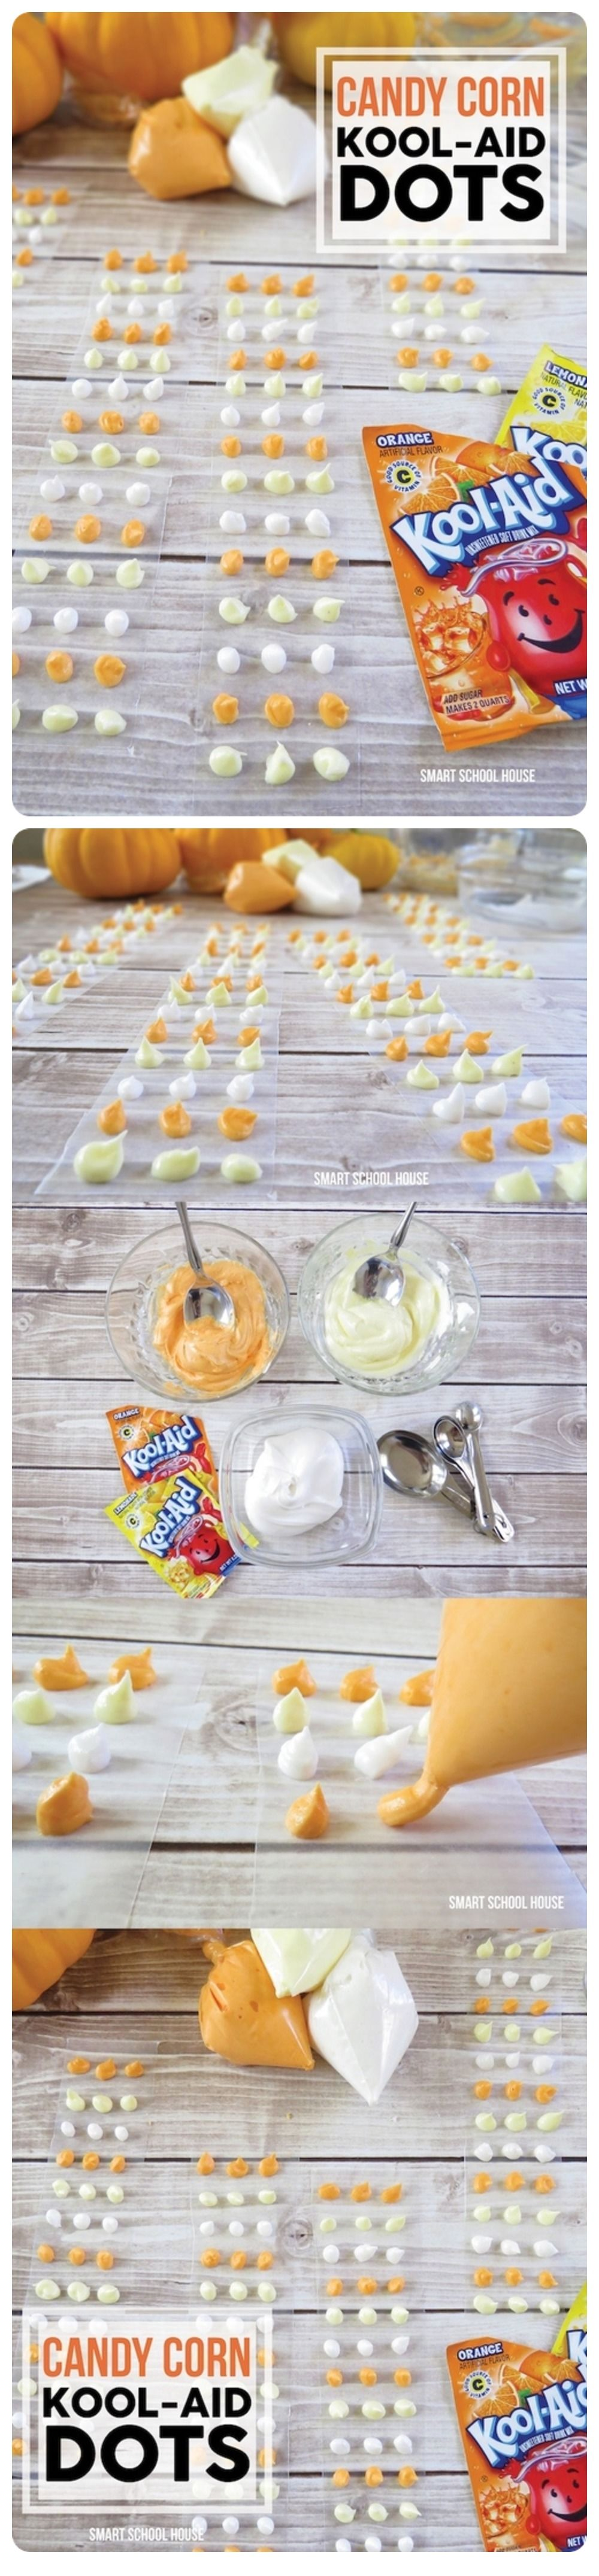 DIY Candy Corn Kool Aid Dots Pictures, Photos, and Images ...